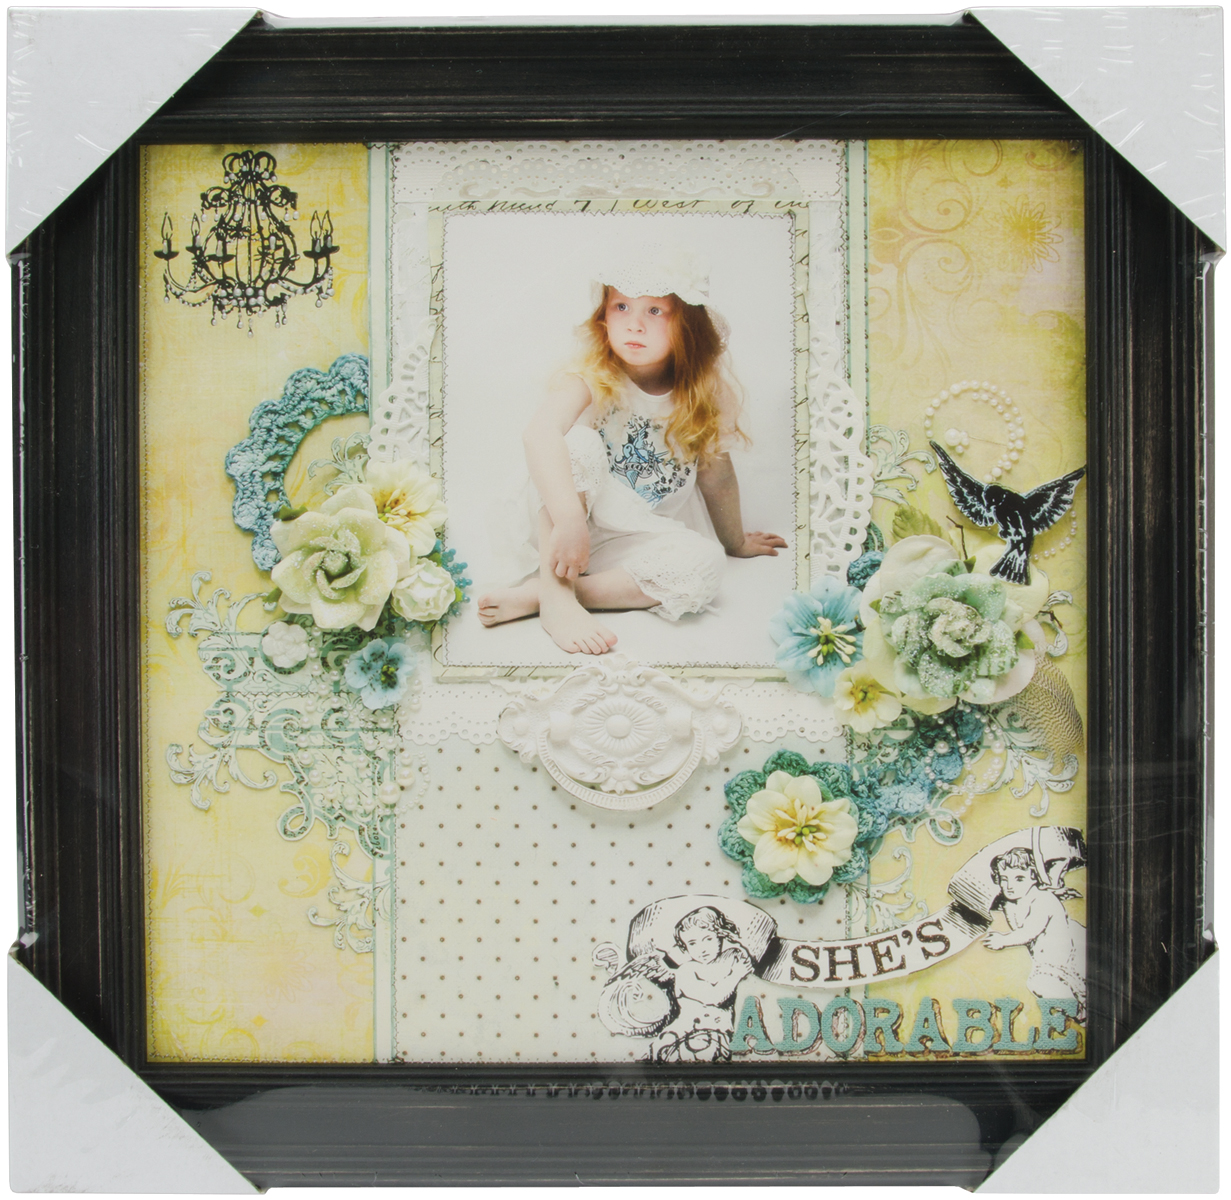 Wood Frame 12 Inch X 12 Inch-Antique Black